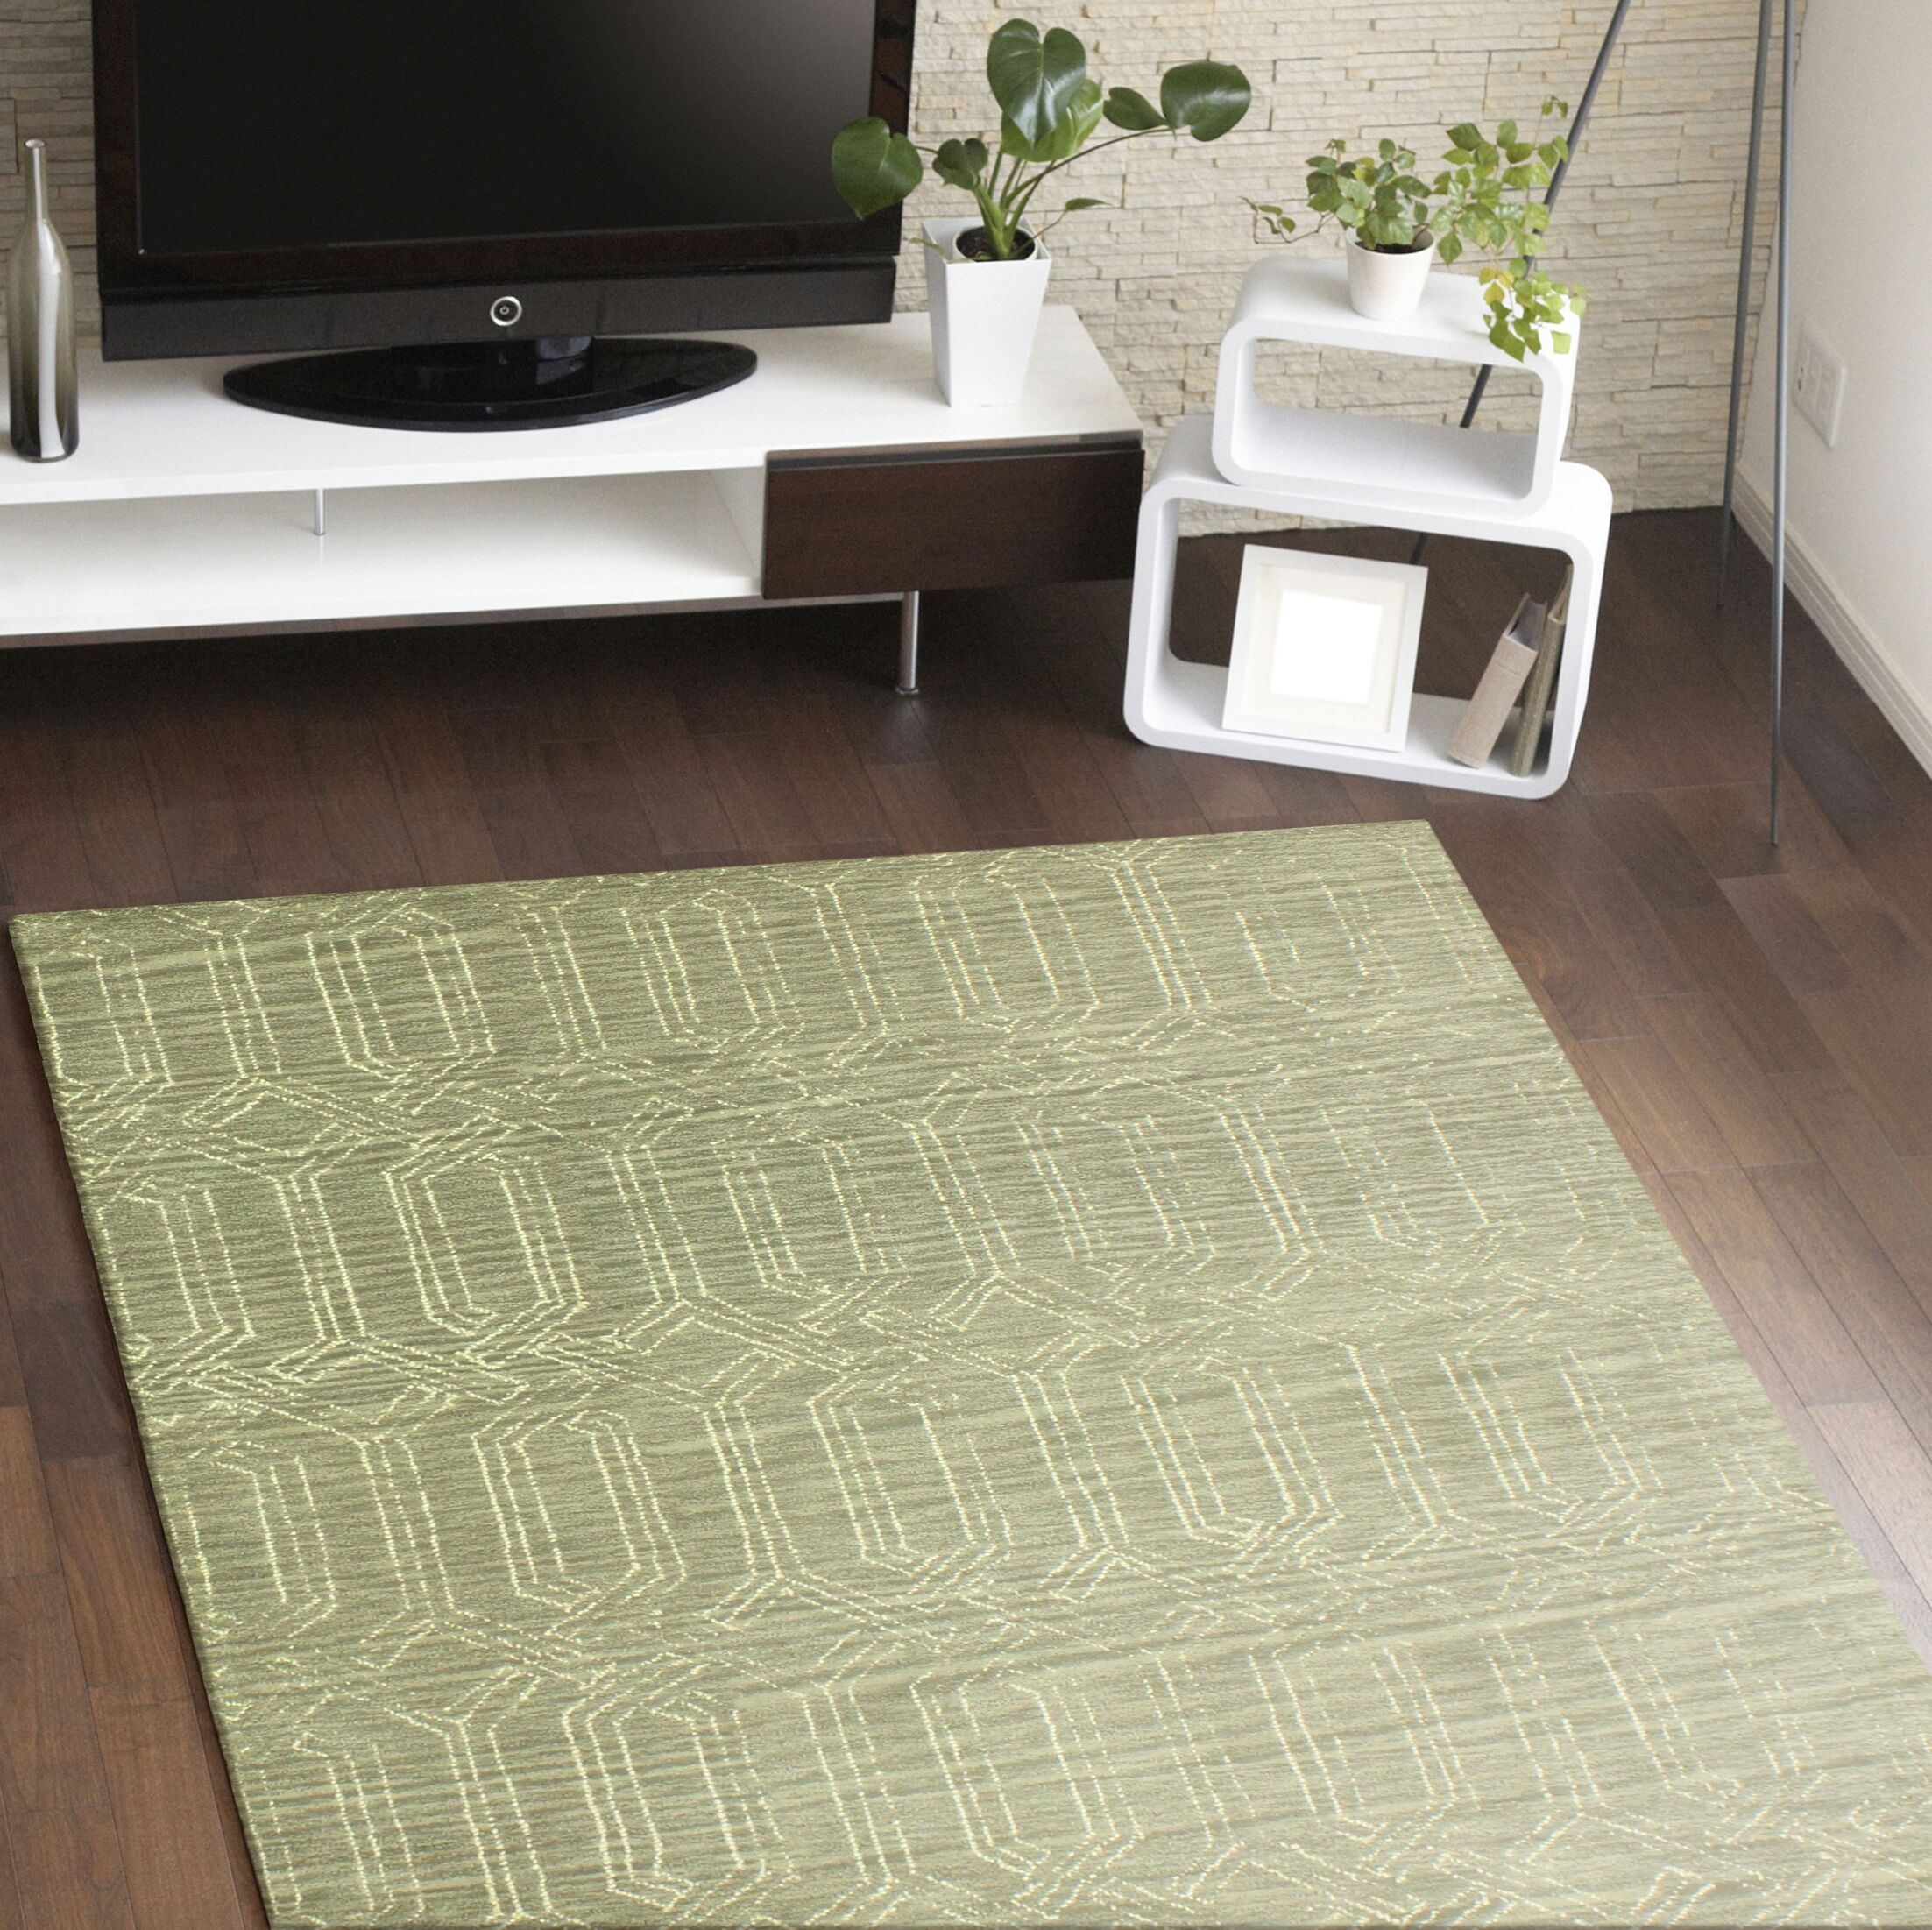 Bryden Hand-Tufted Taupe Area Rug Rug Size: 8'6